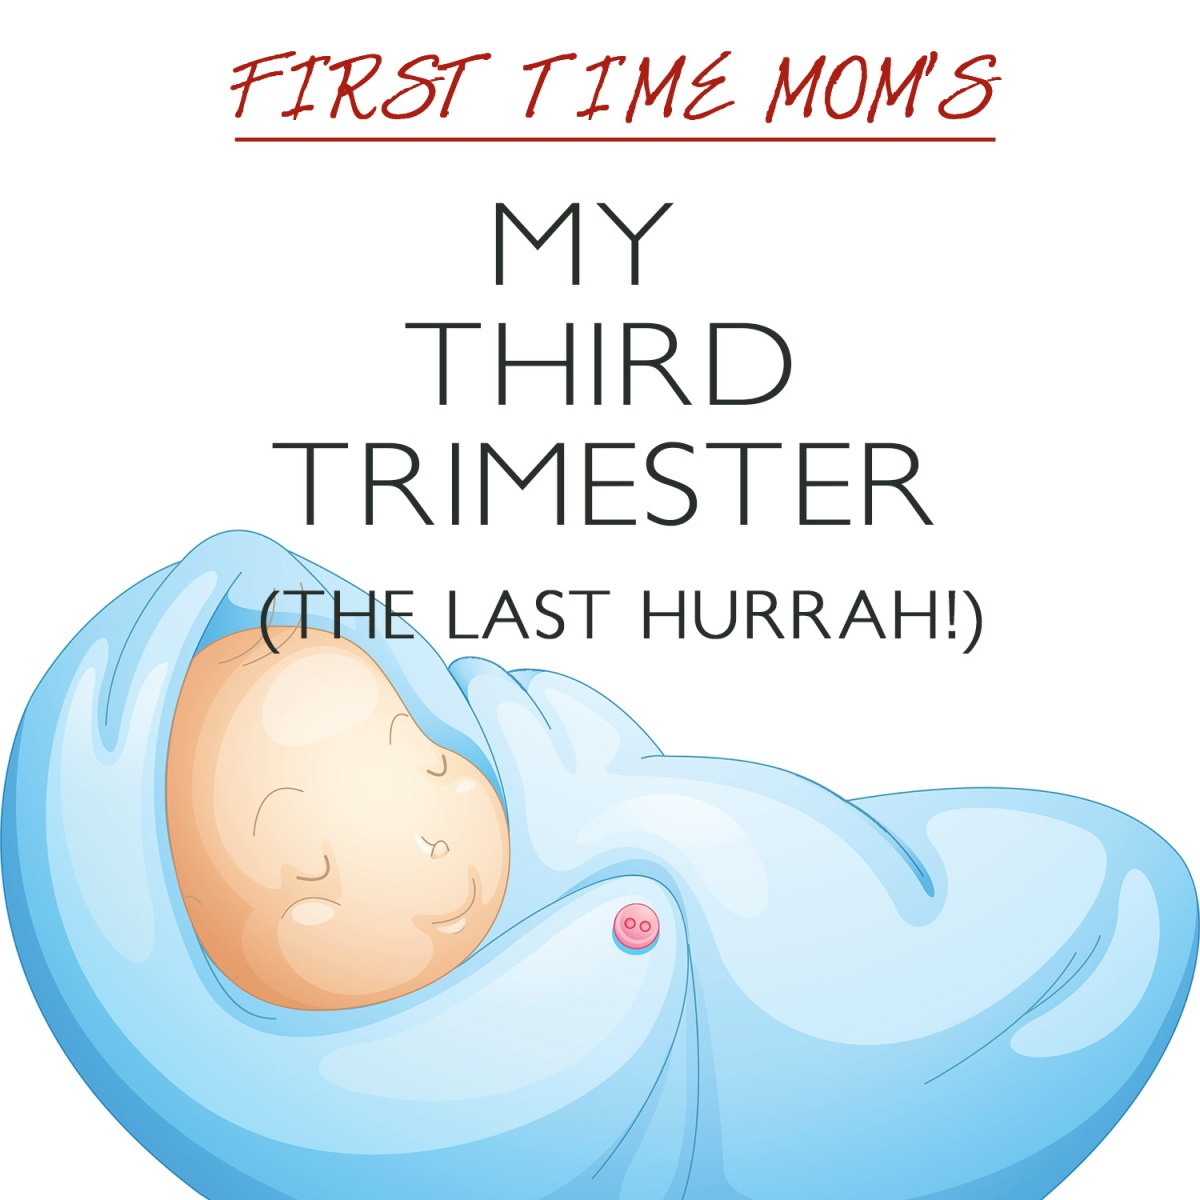 My Third Trimester (the last hurrah!)